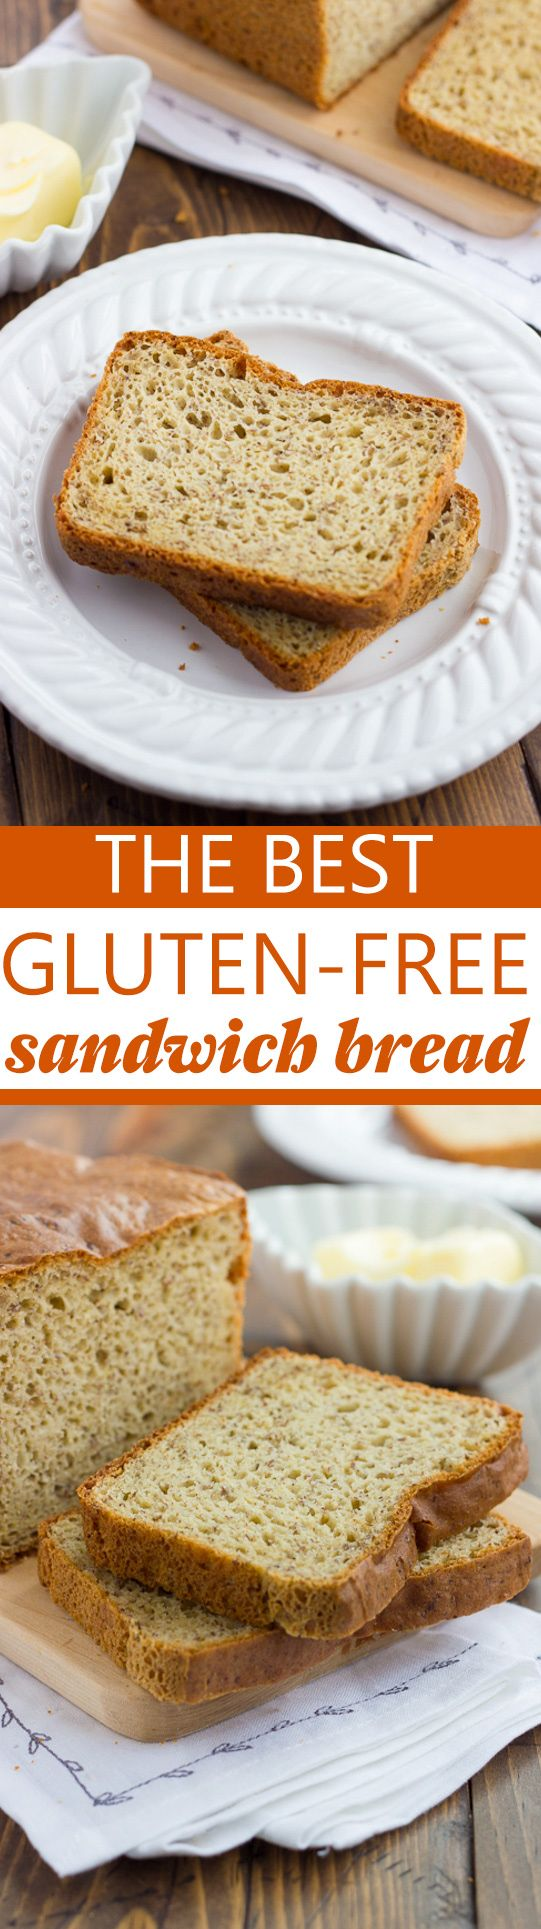 The Best Gluten-Free Sandwich Bread! Delicious flavor and texture. You'll never need to try another recipe!